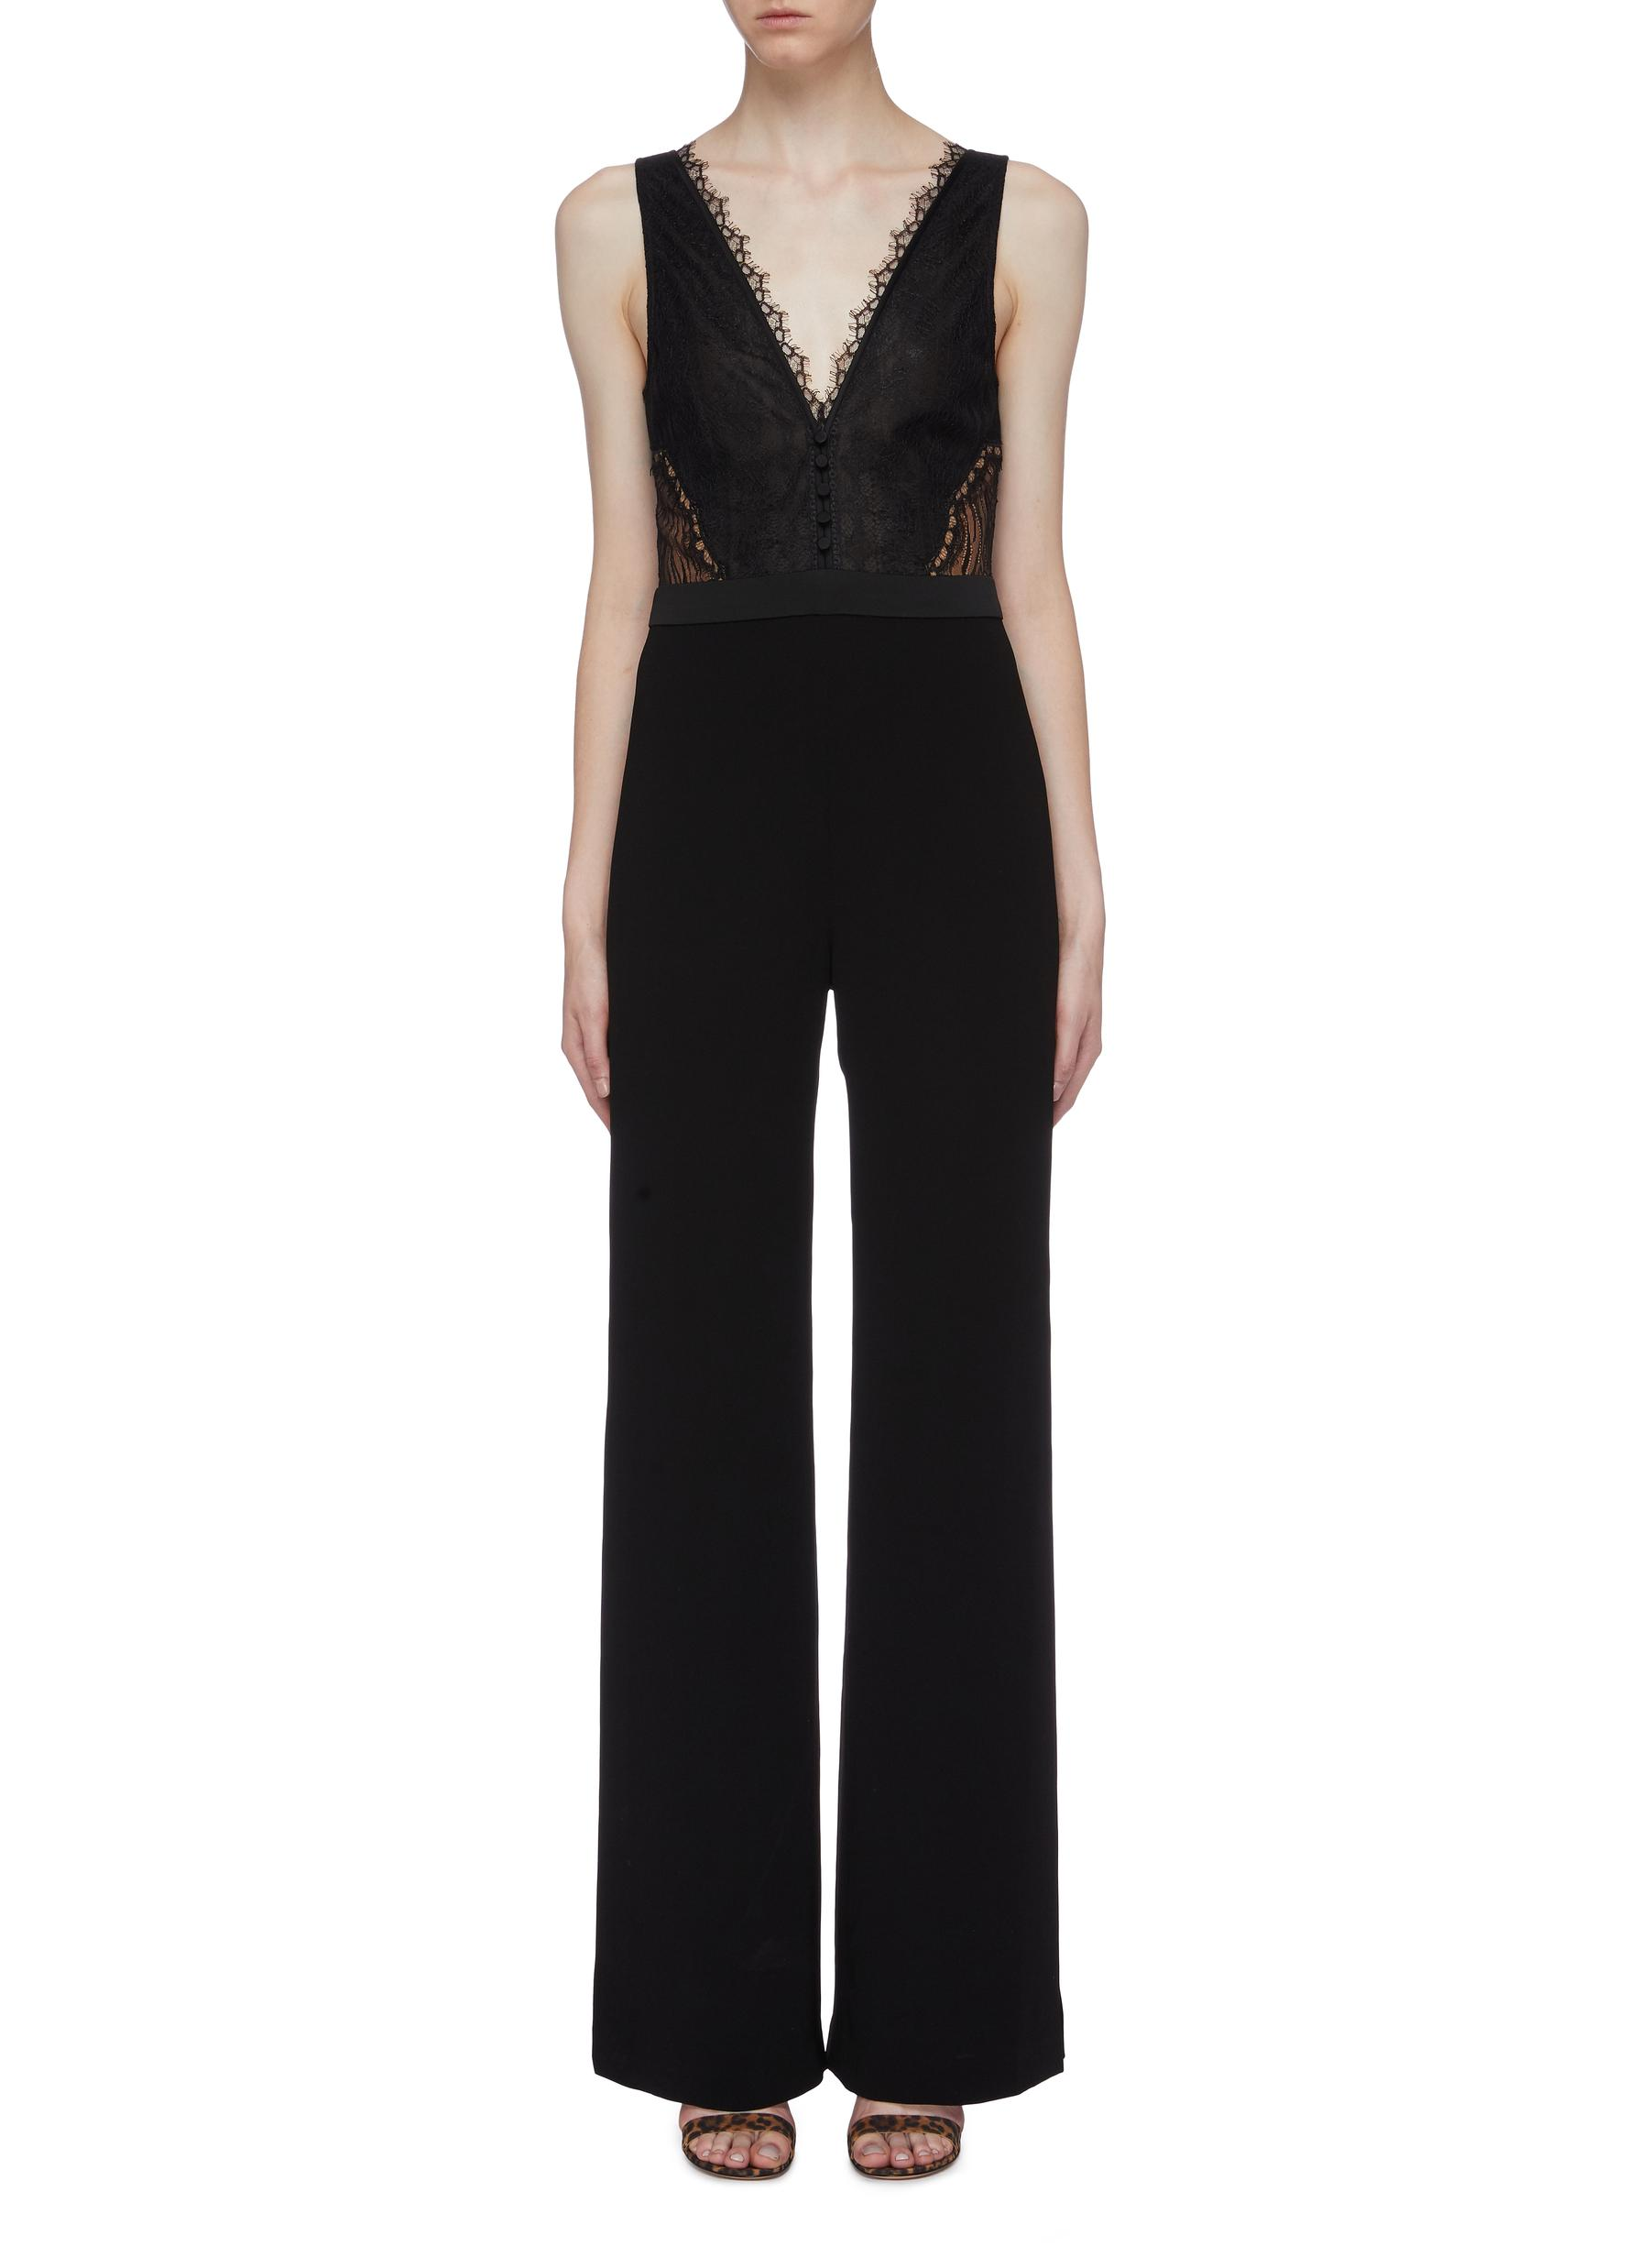 Lace panel sateen sleeveless jumpsuit by Jonathan Simkhai